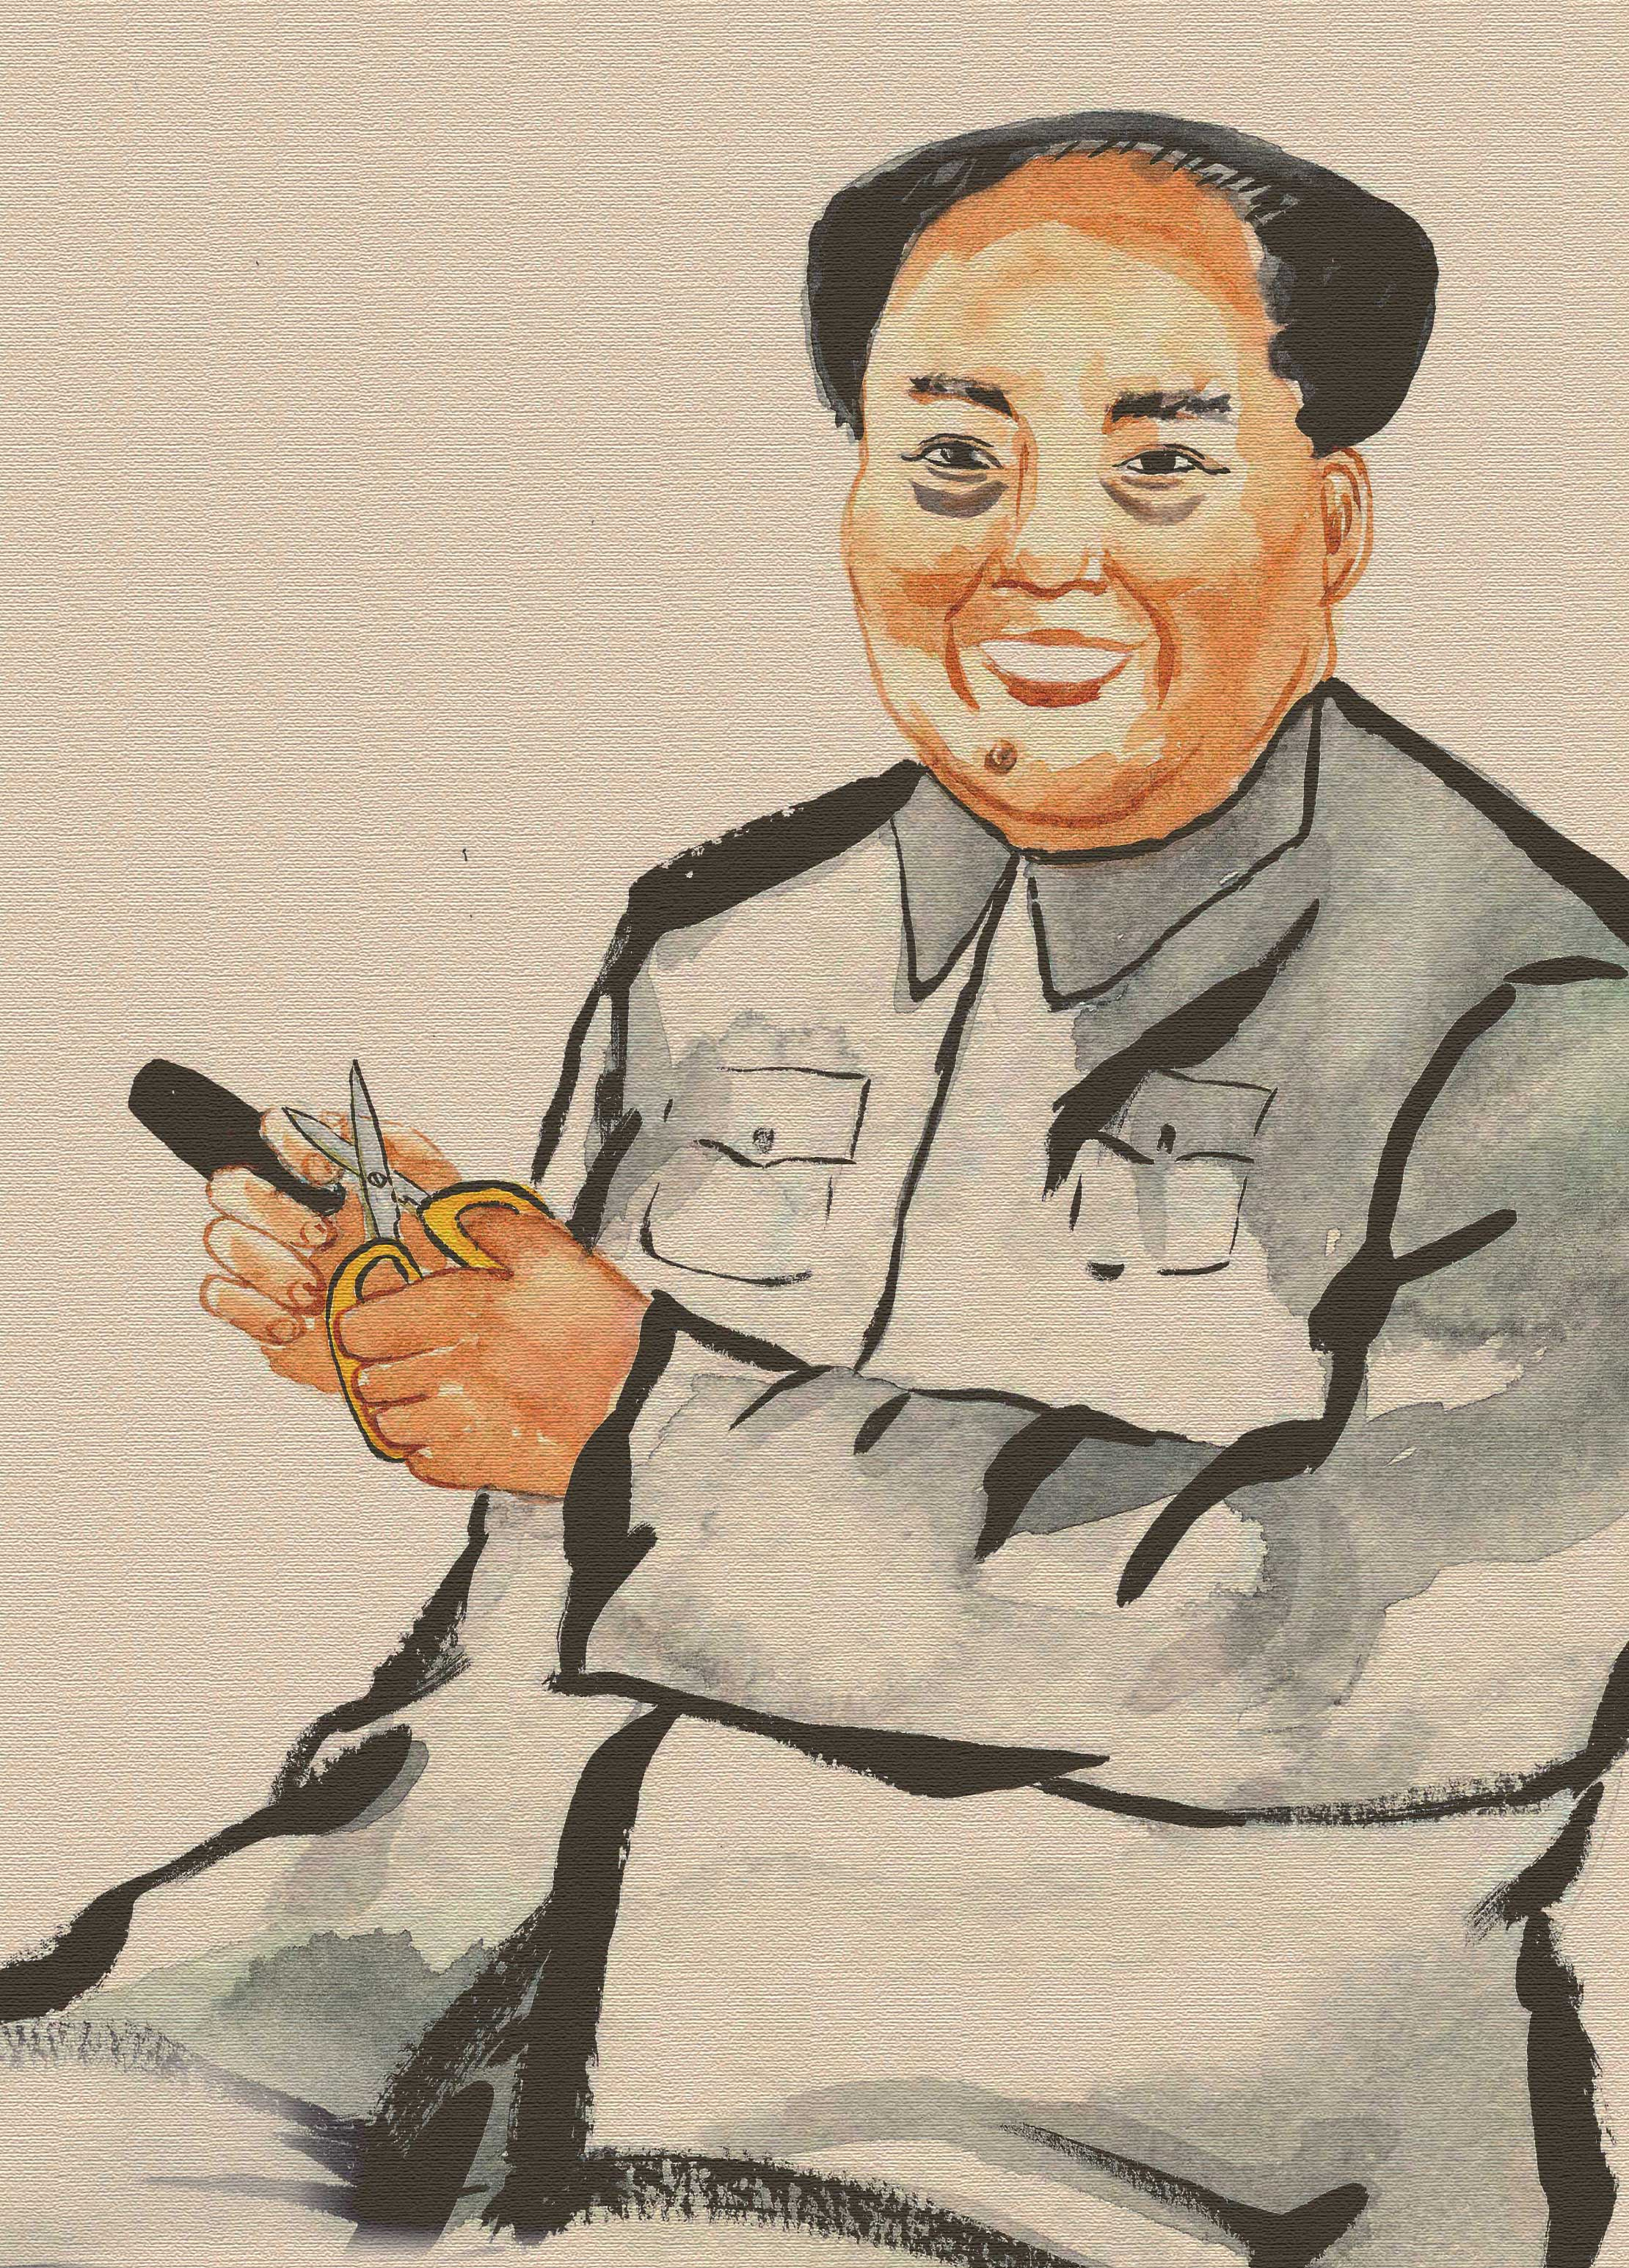 Mao with his cigar